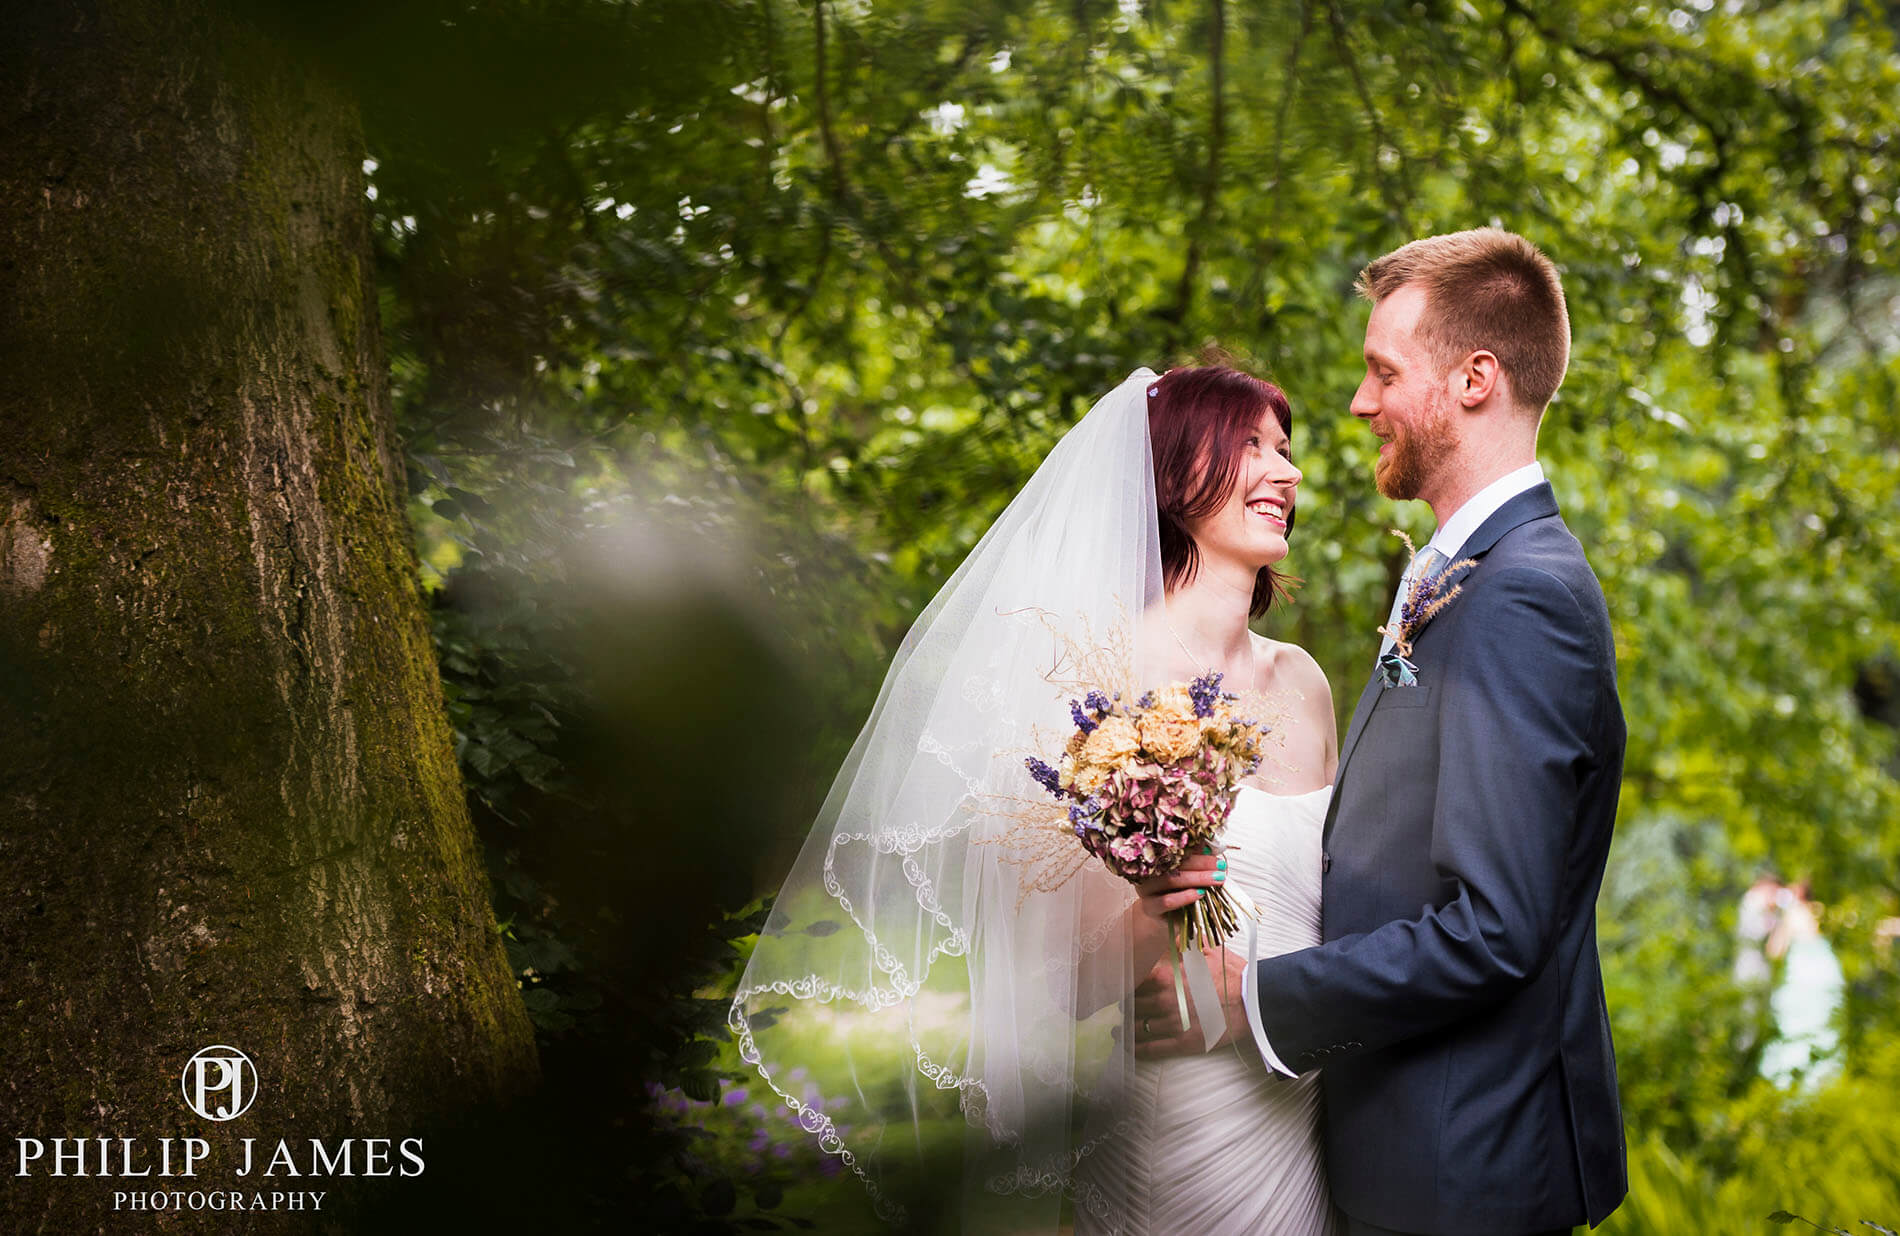 Birmingham Wedding Photographer - Philip James Photography based in Solihull (13 of 68)